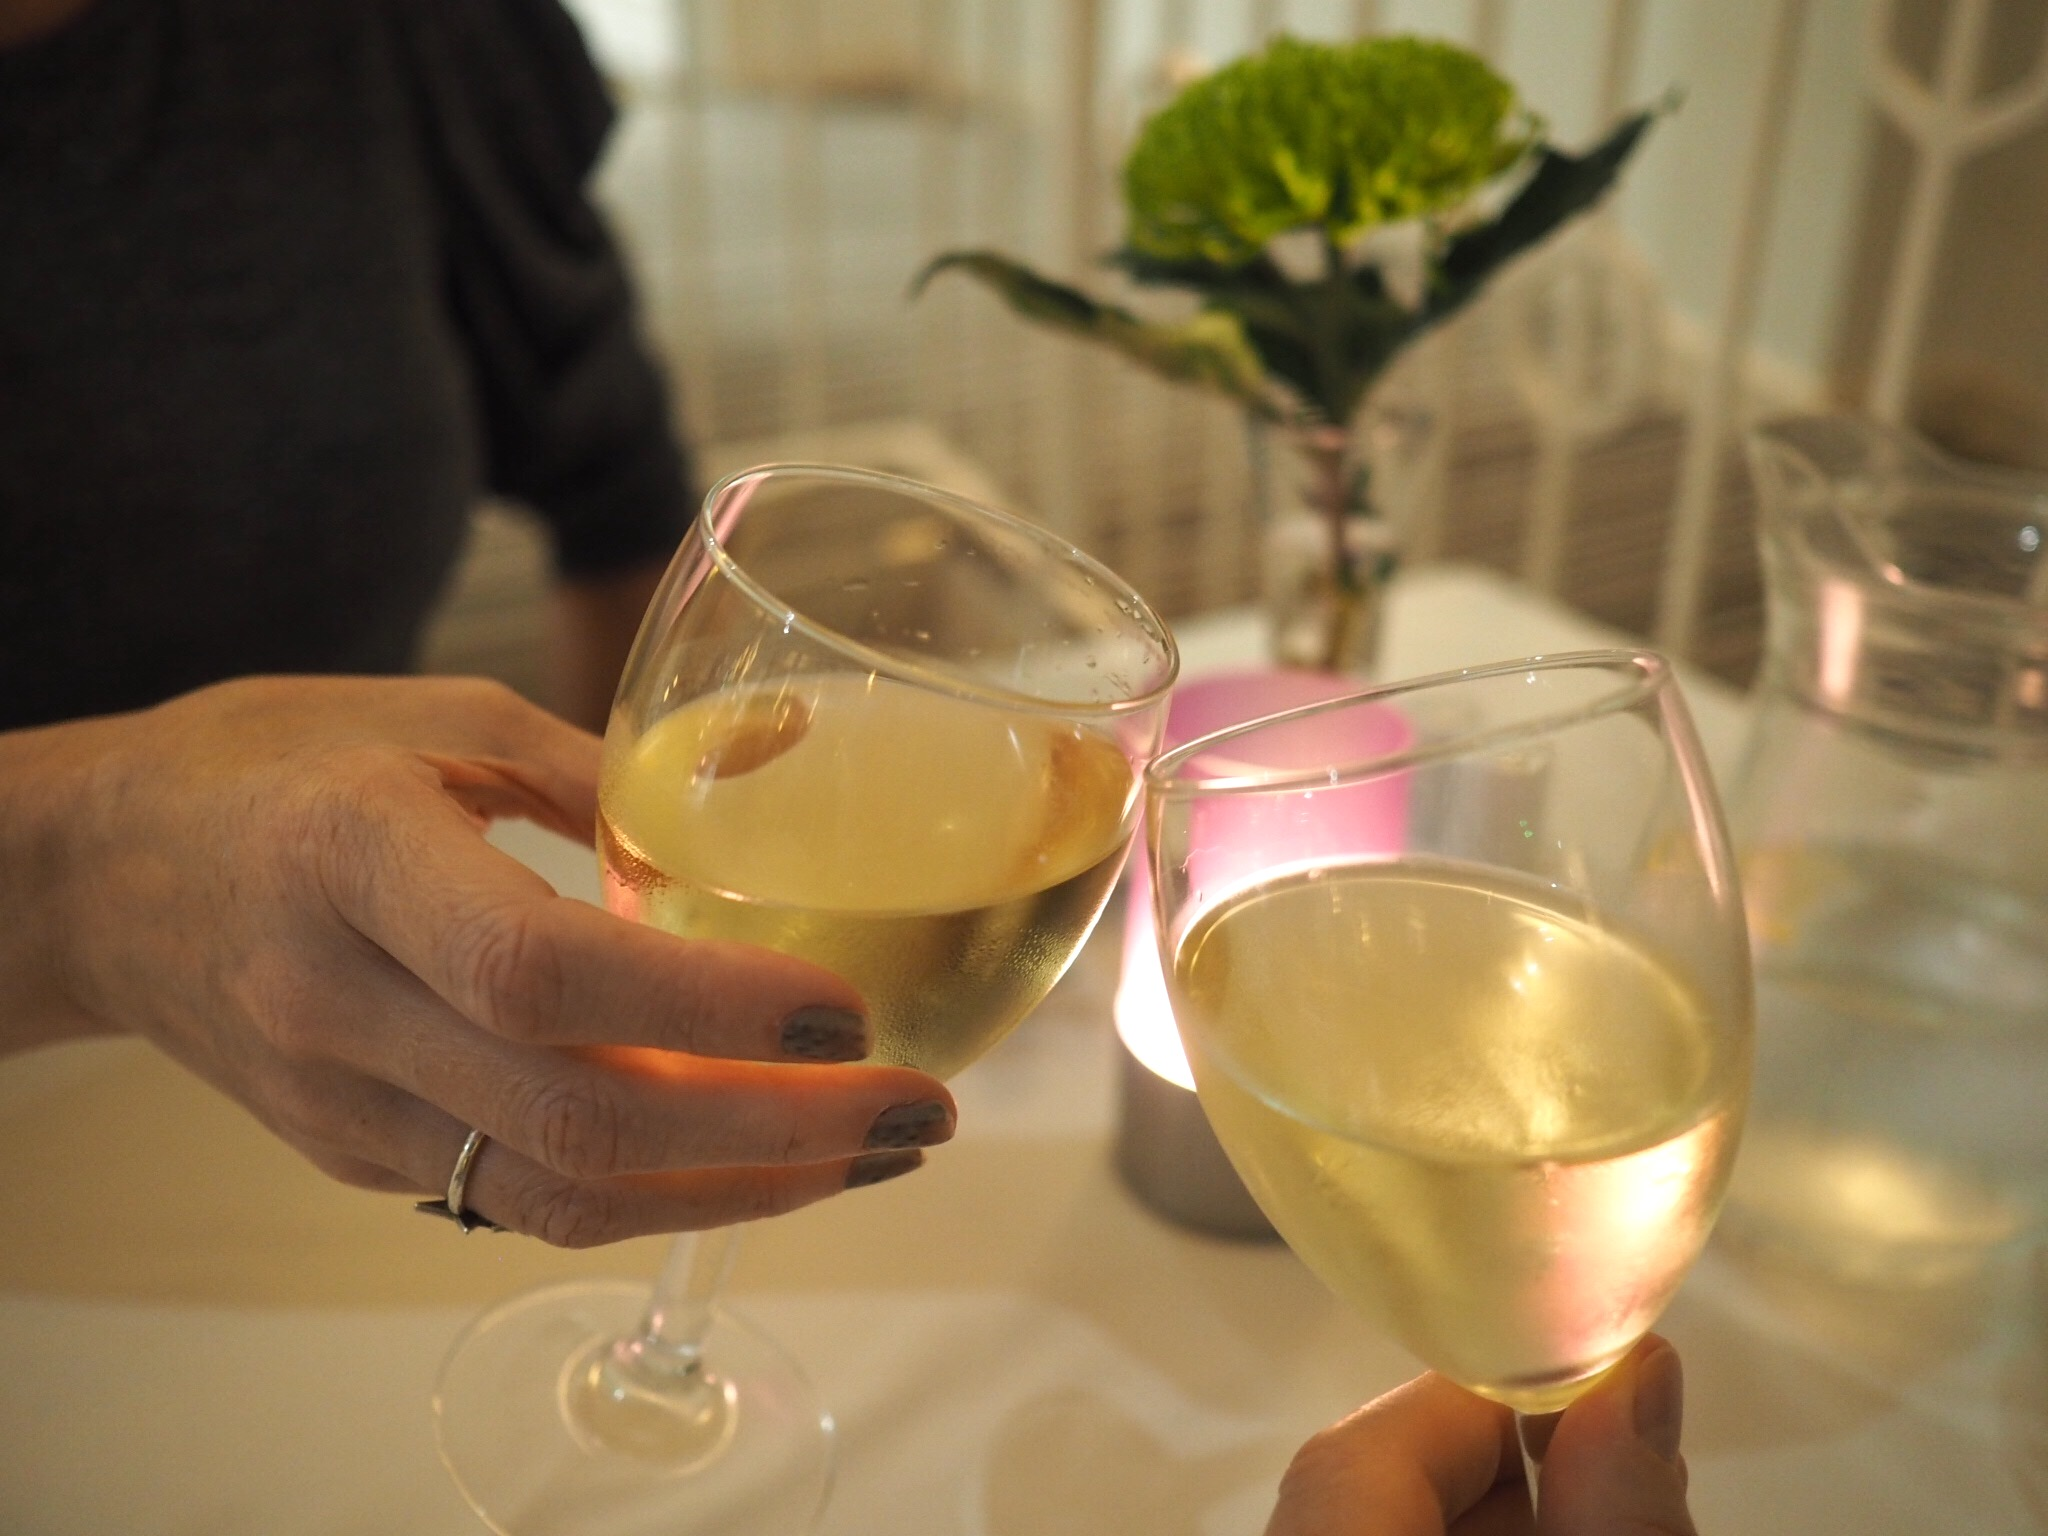 What-LizzyLoves-Bank-House-Hotel-spa-review-Worcester-dinner-wine